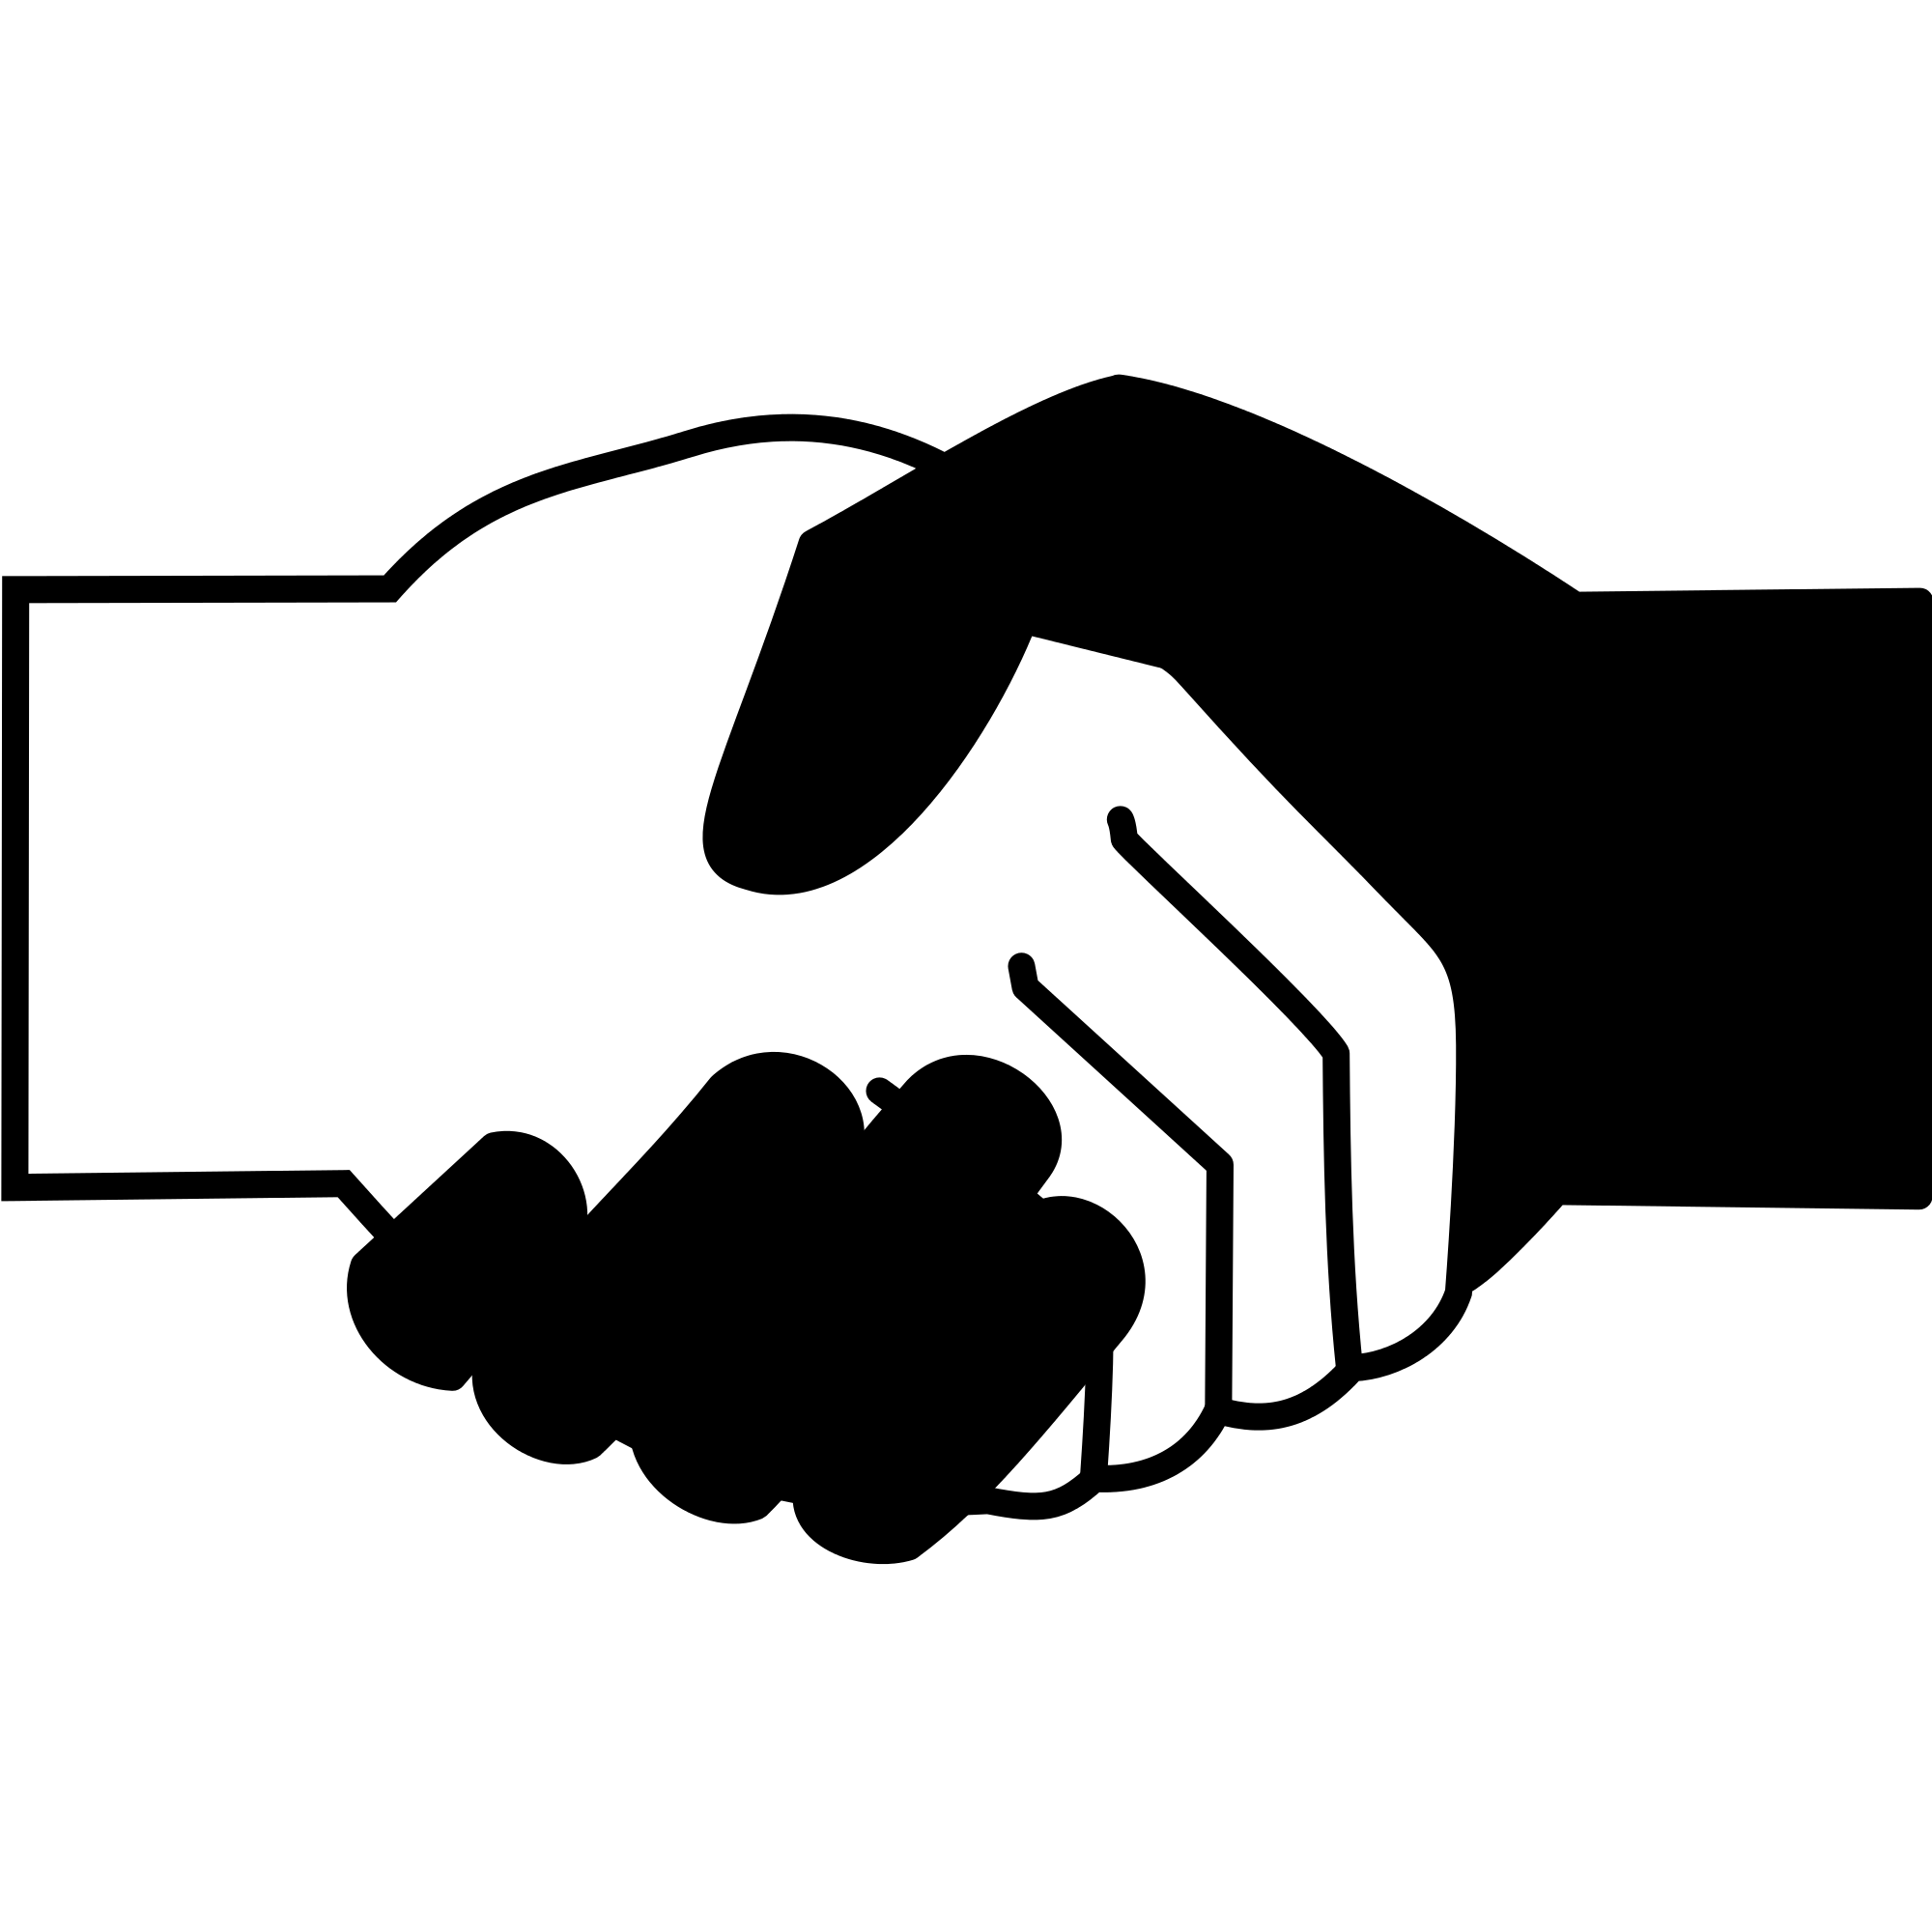 Black and white hands png. File handshake icon svg